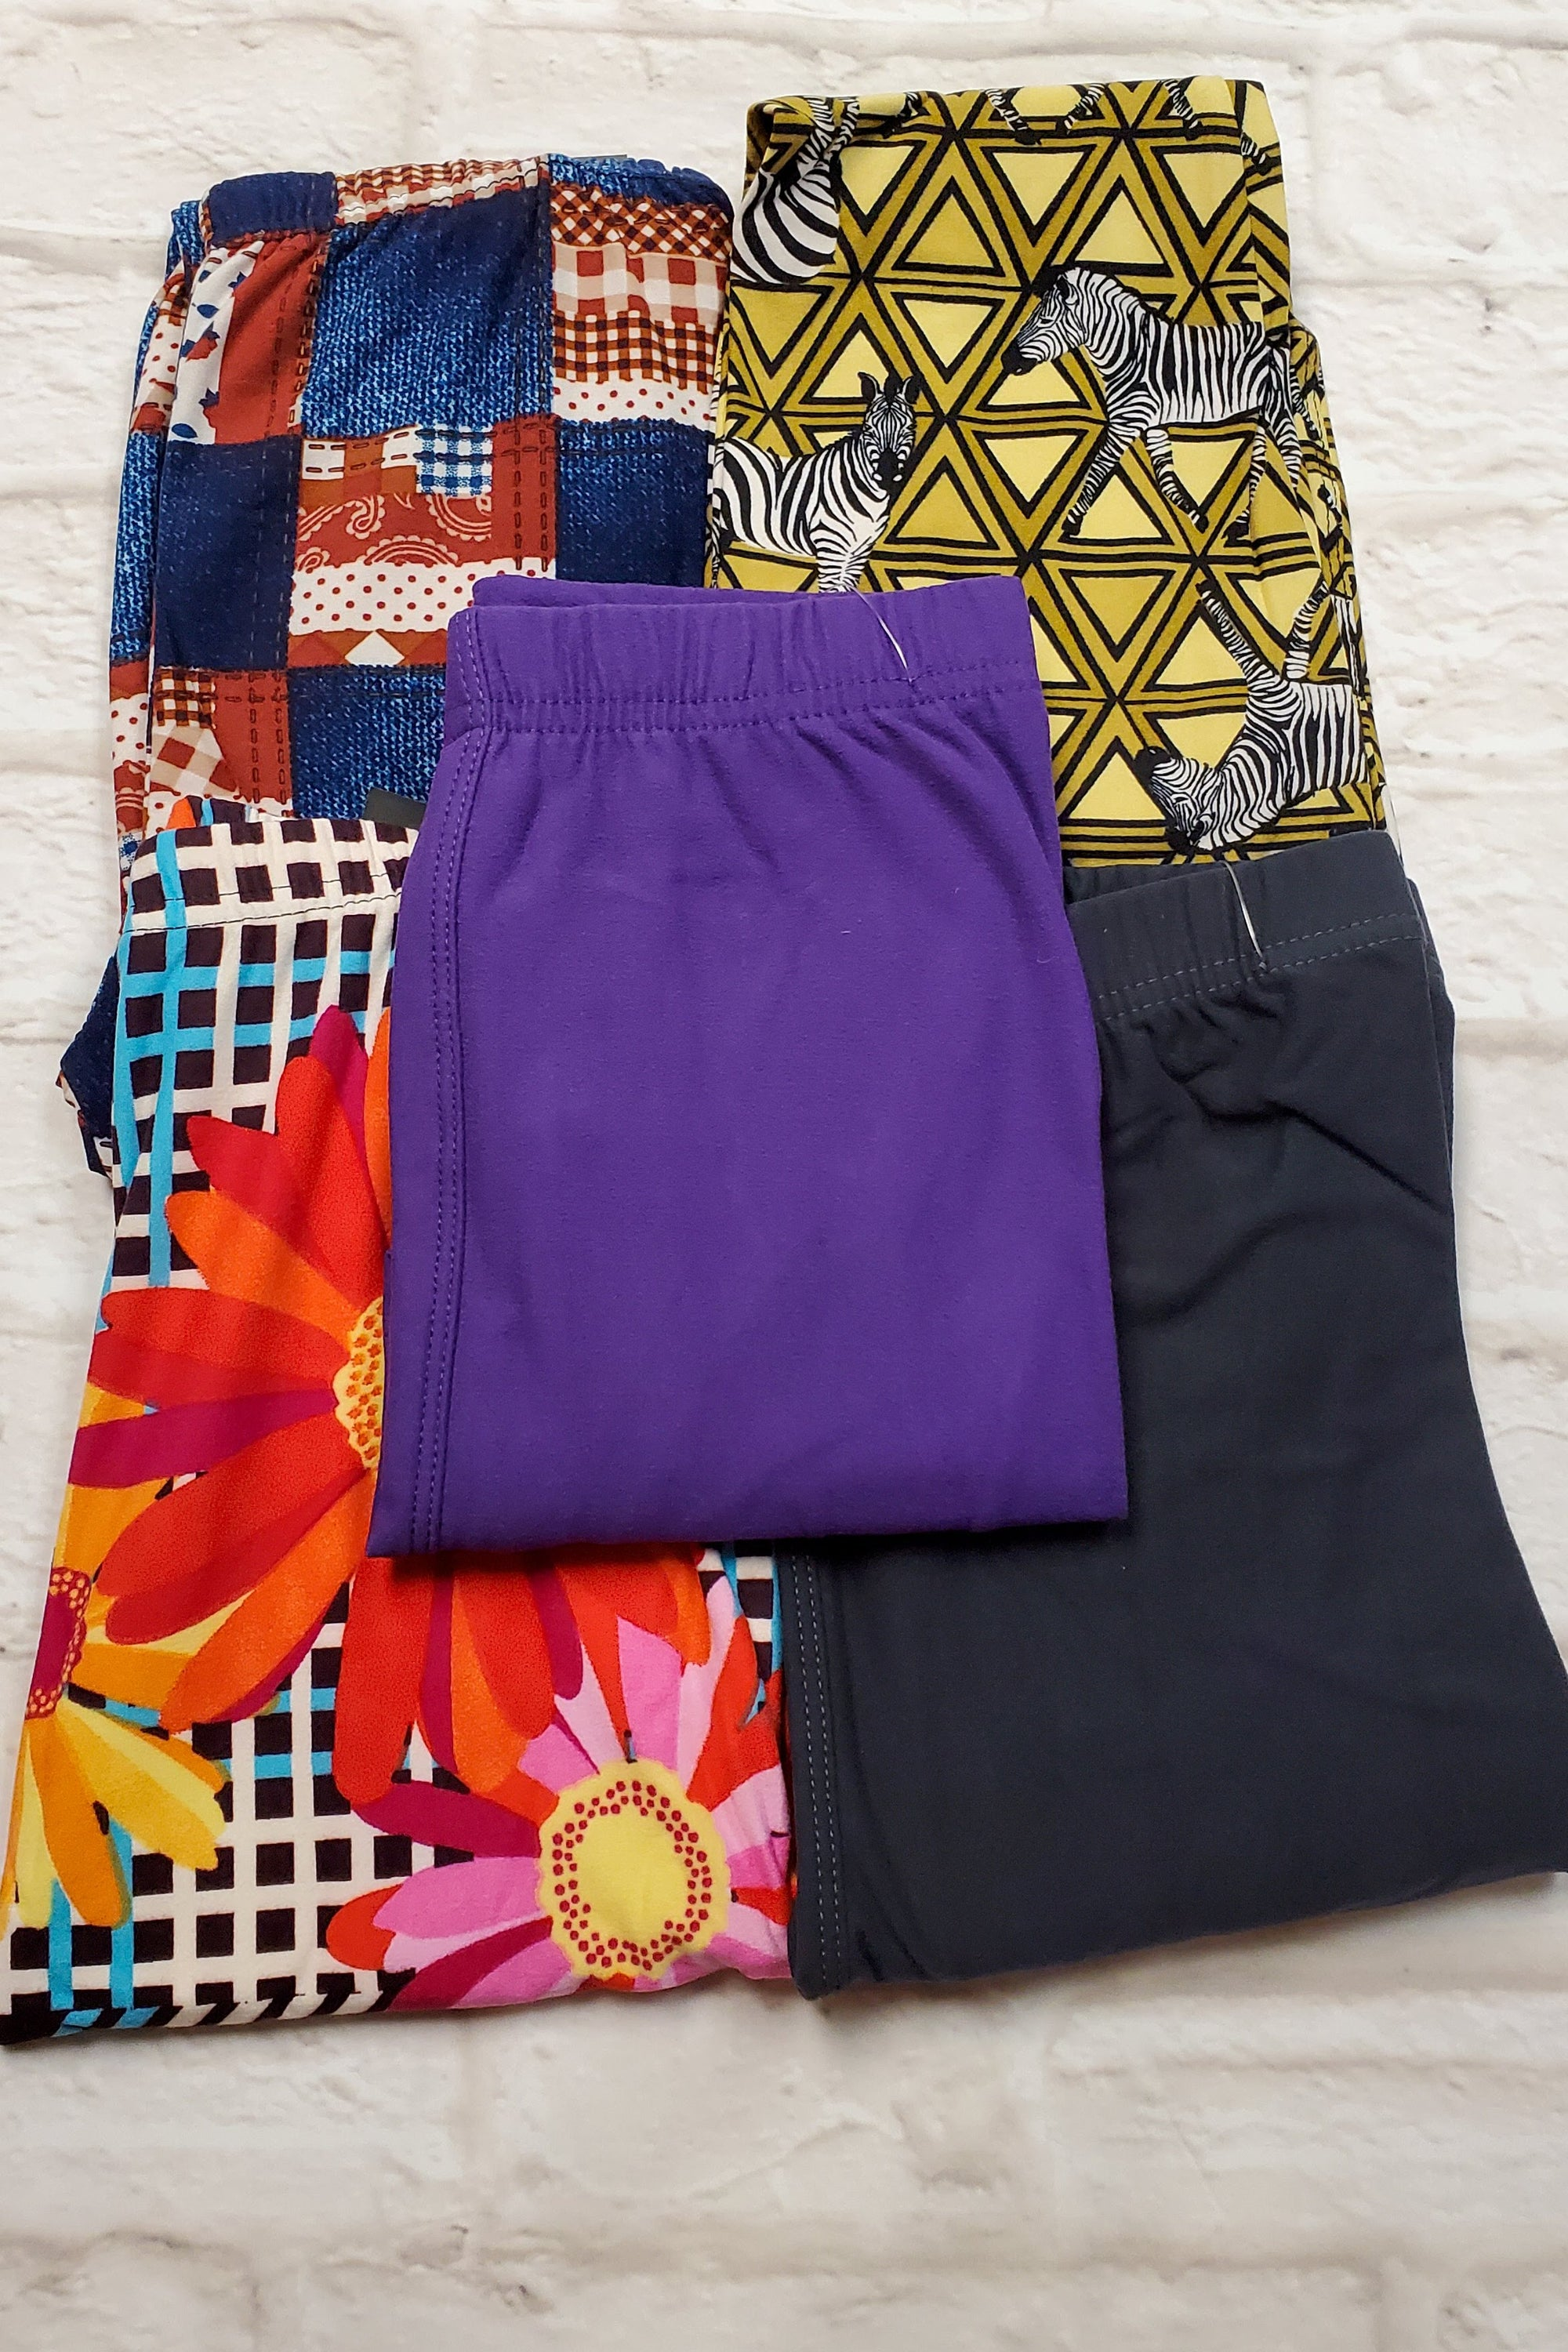 KIDS LEGGINGS CLEARANCE 5pk BUNDLE L Small (as pictured)